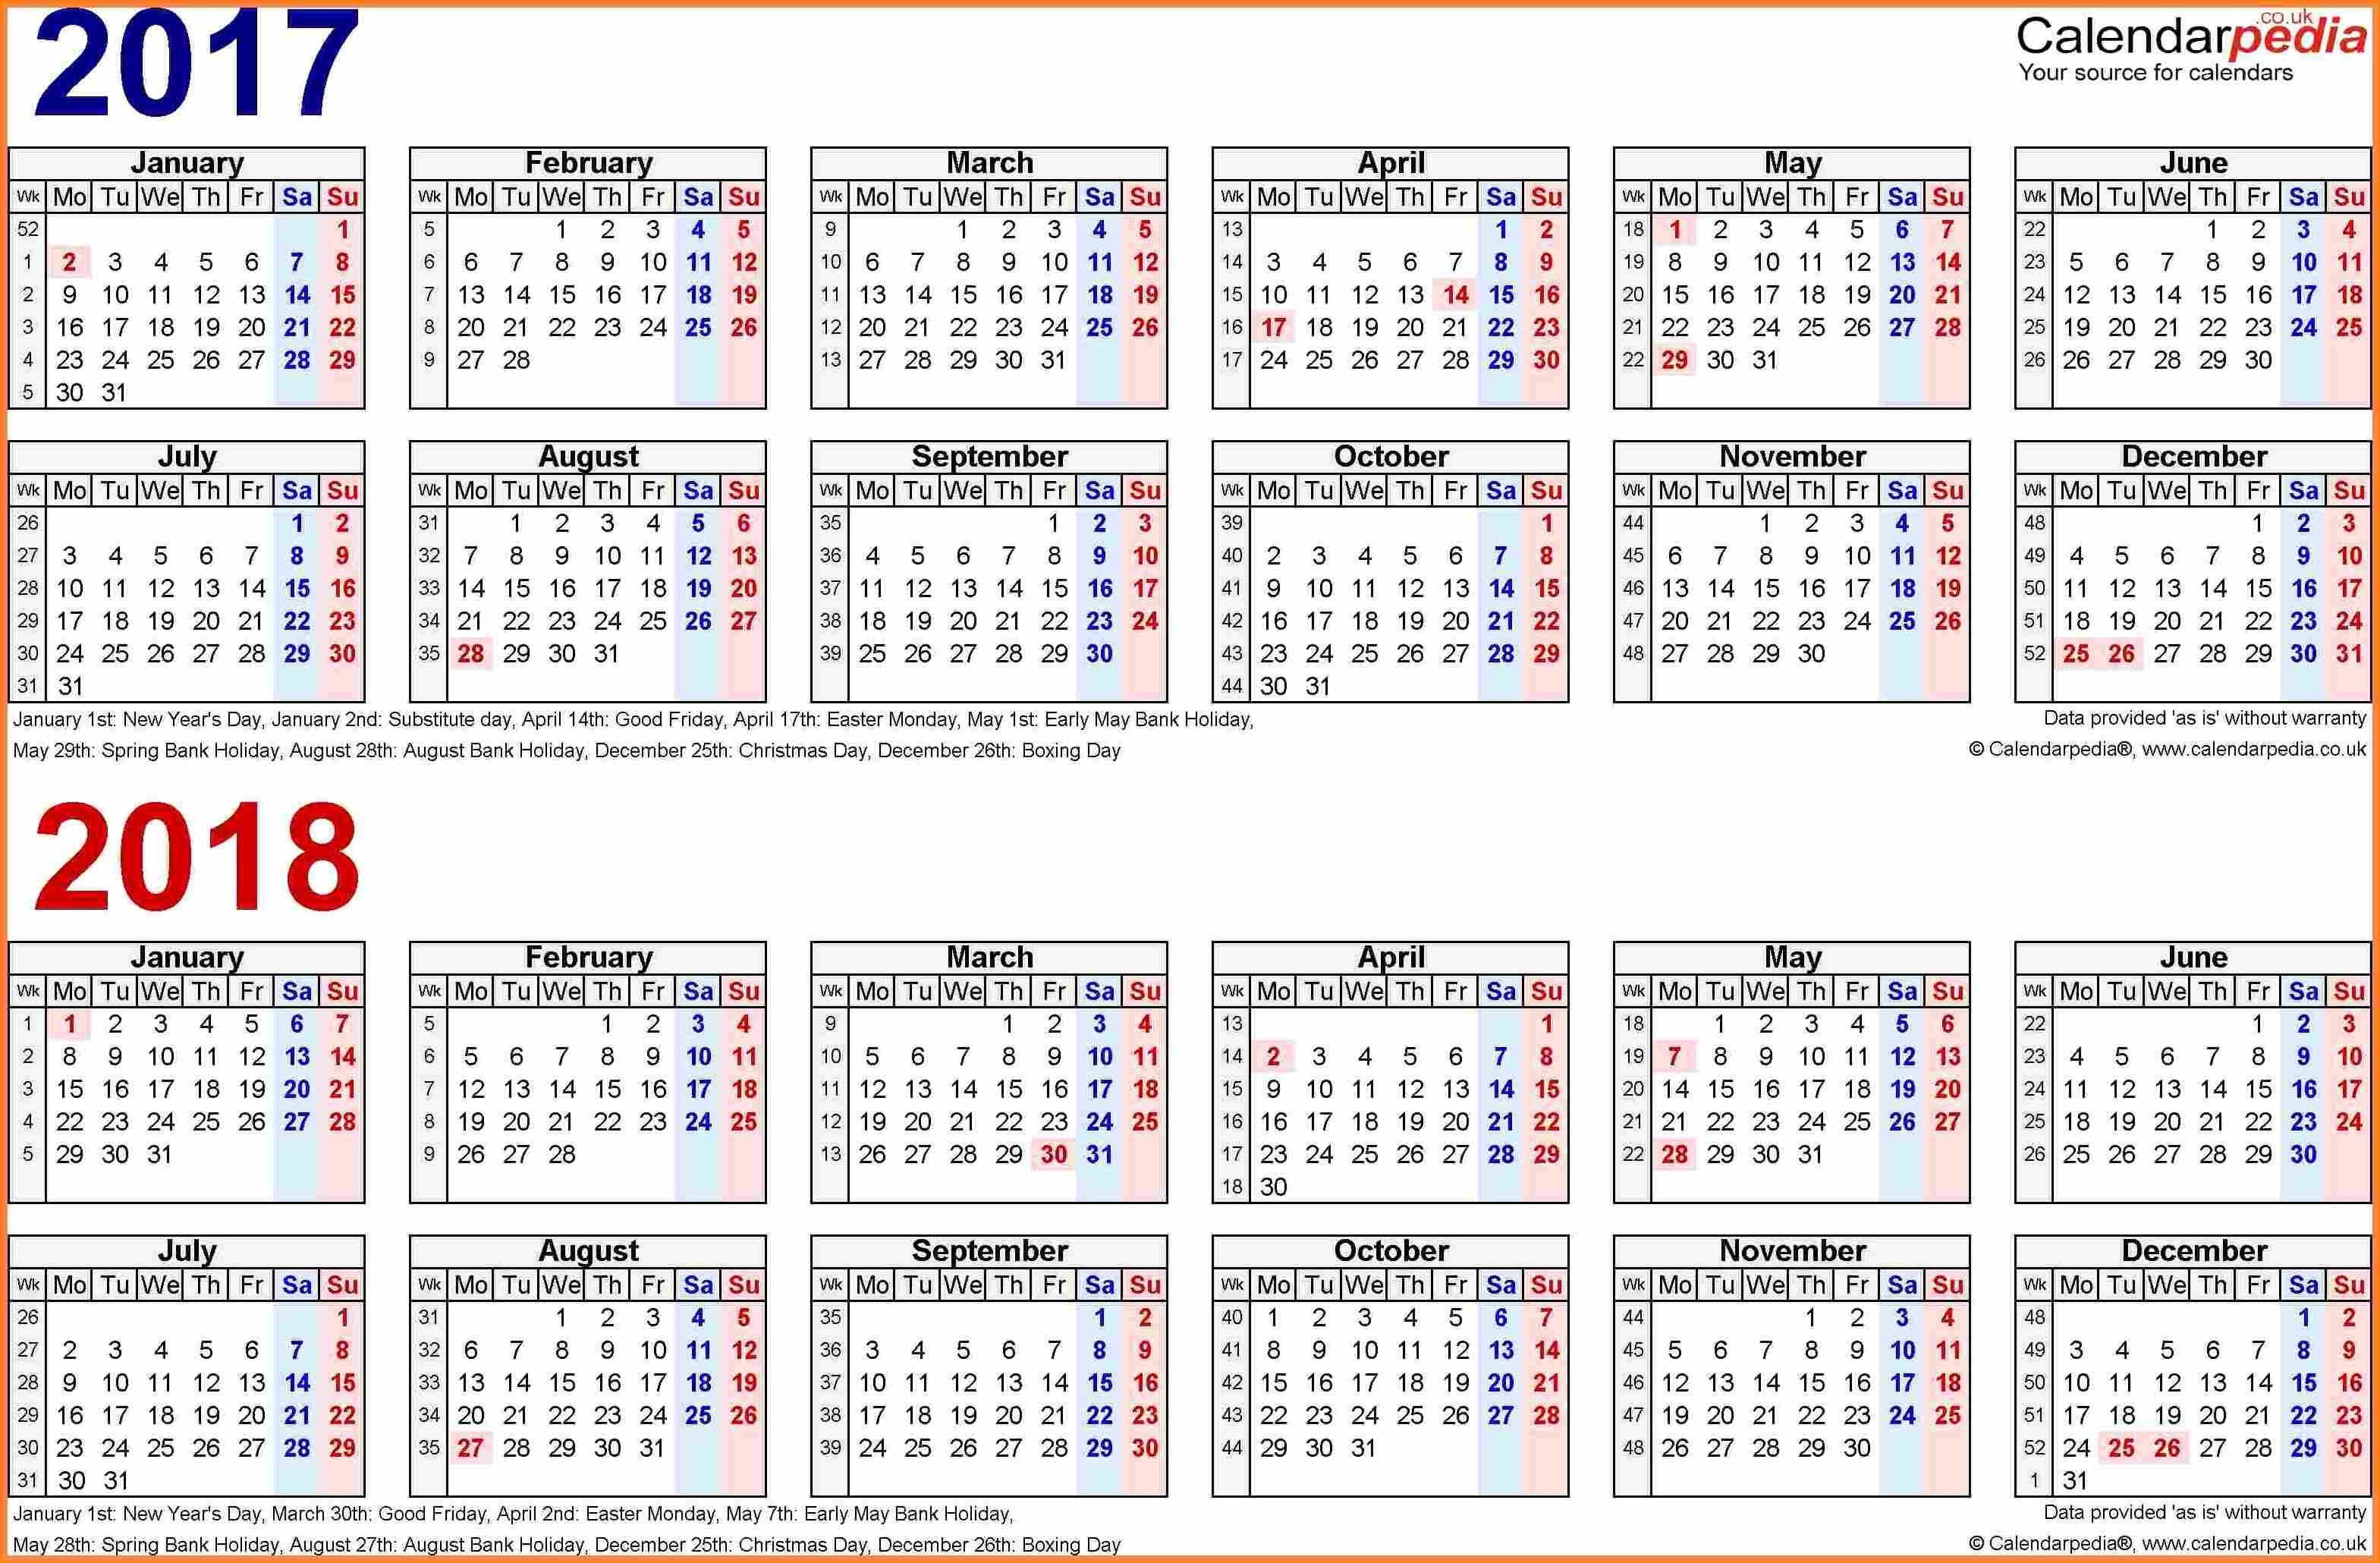 12+ Bi-Weekly Payroll Calendar | Secure Paystub regarding Calendar Of Biweekly Pay Dates